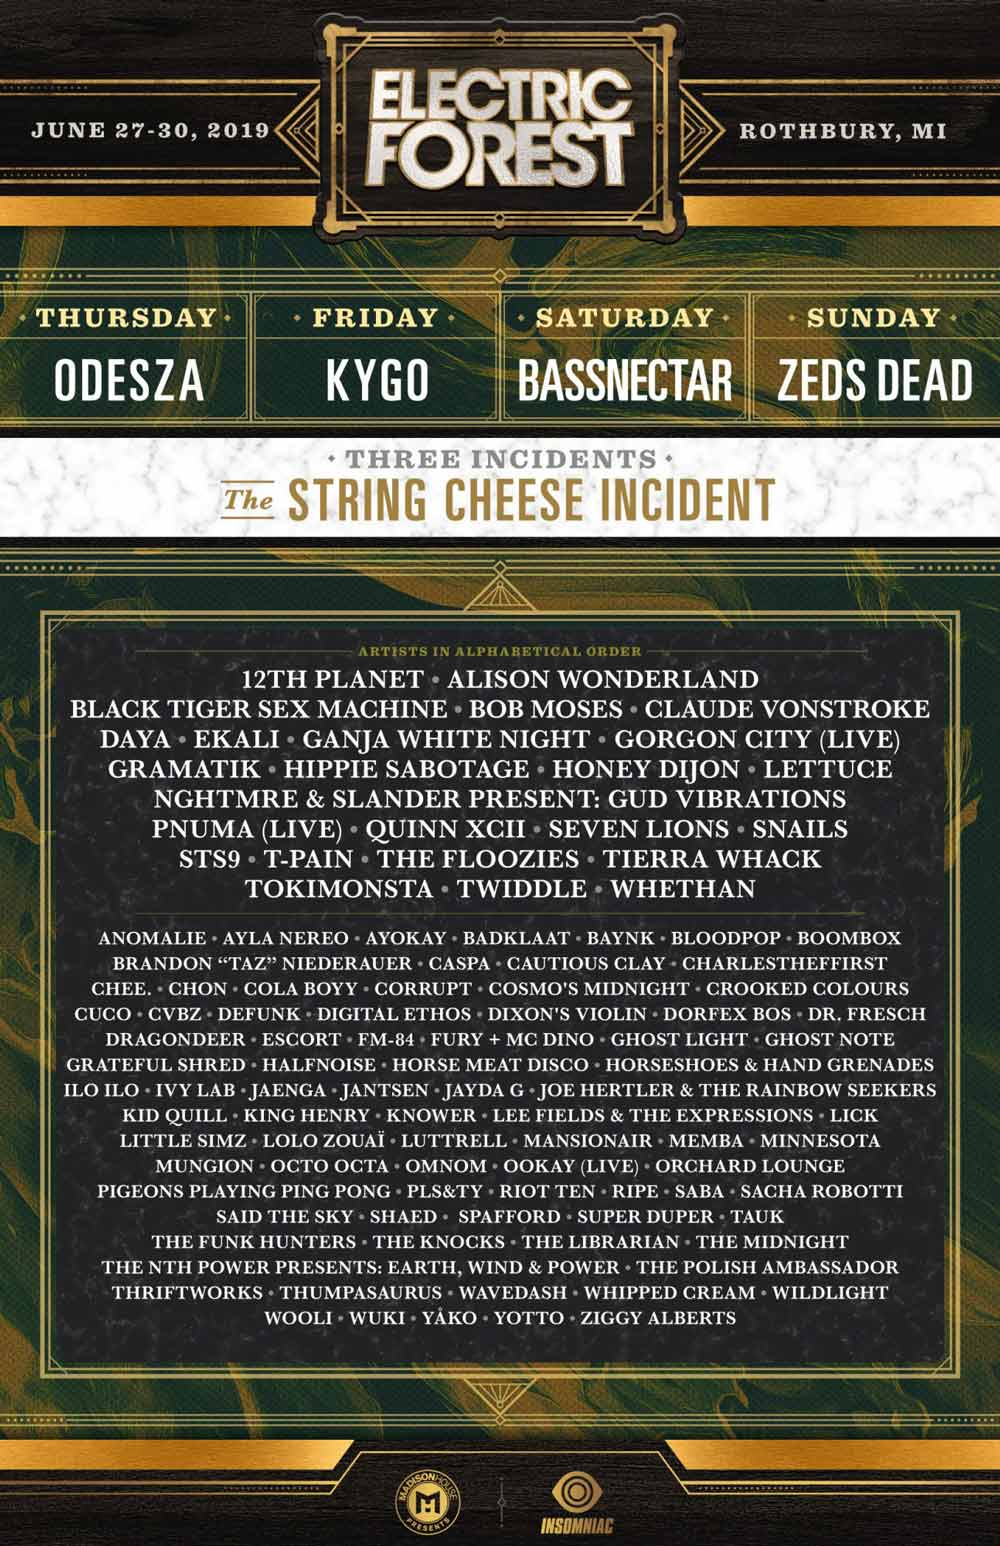 2019 electric forest lineup poster